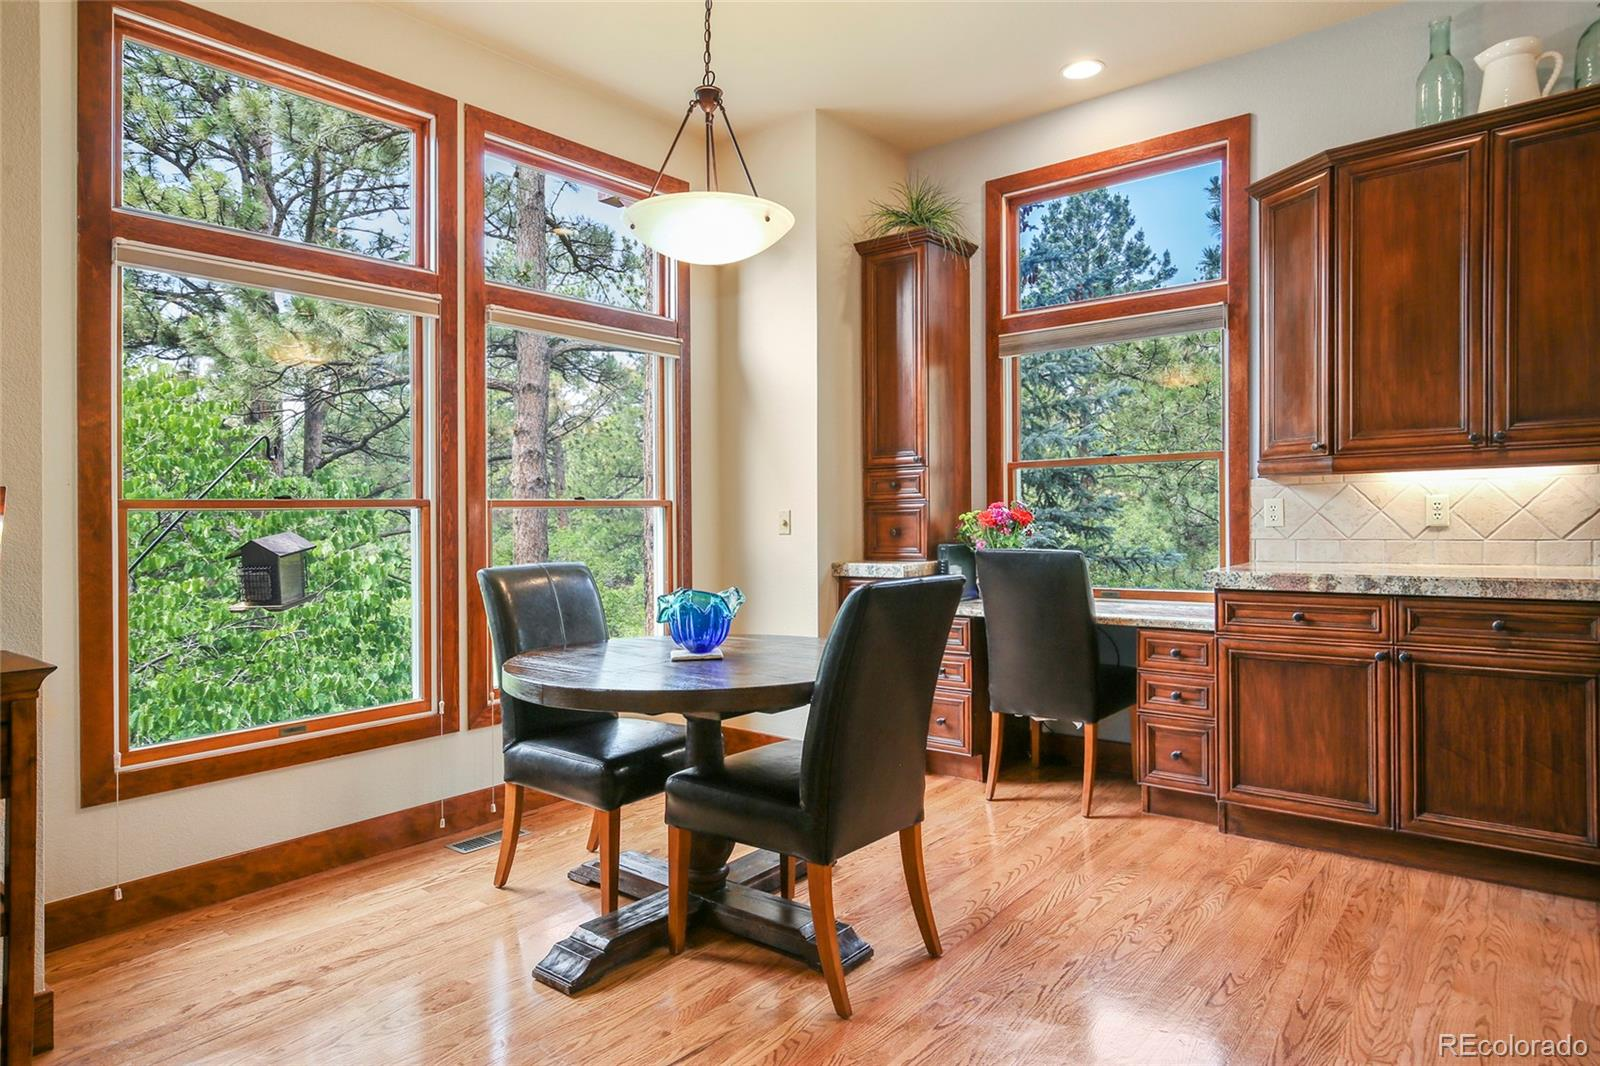 MLS# 8150320 - 12 - 1198 Forest Trails Drive, Castle Pines, CO 80108